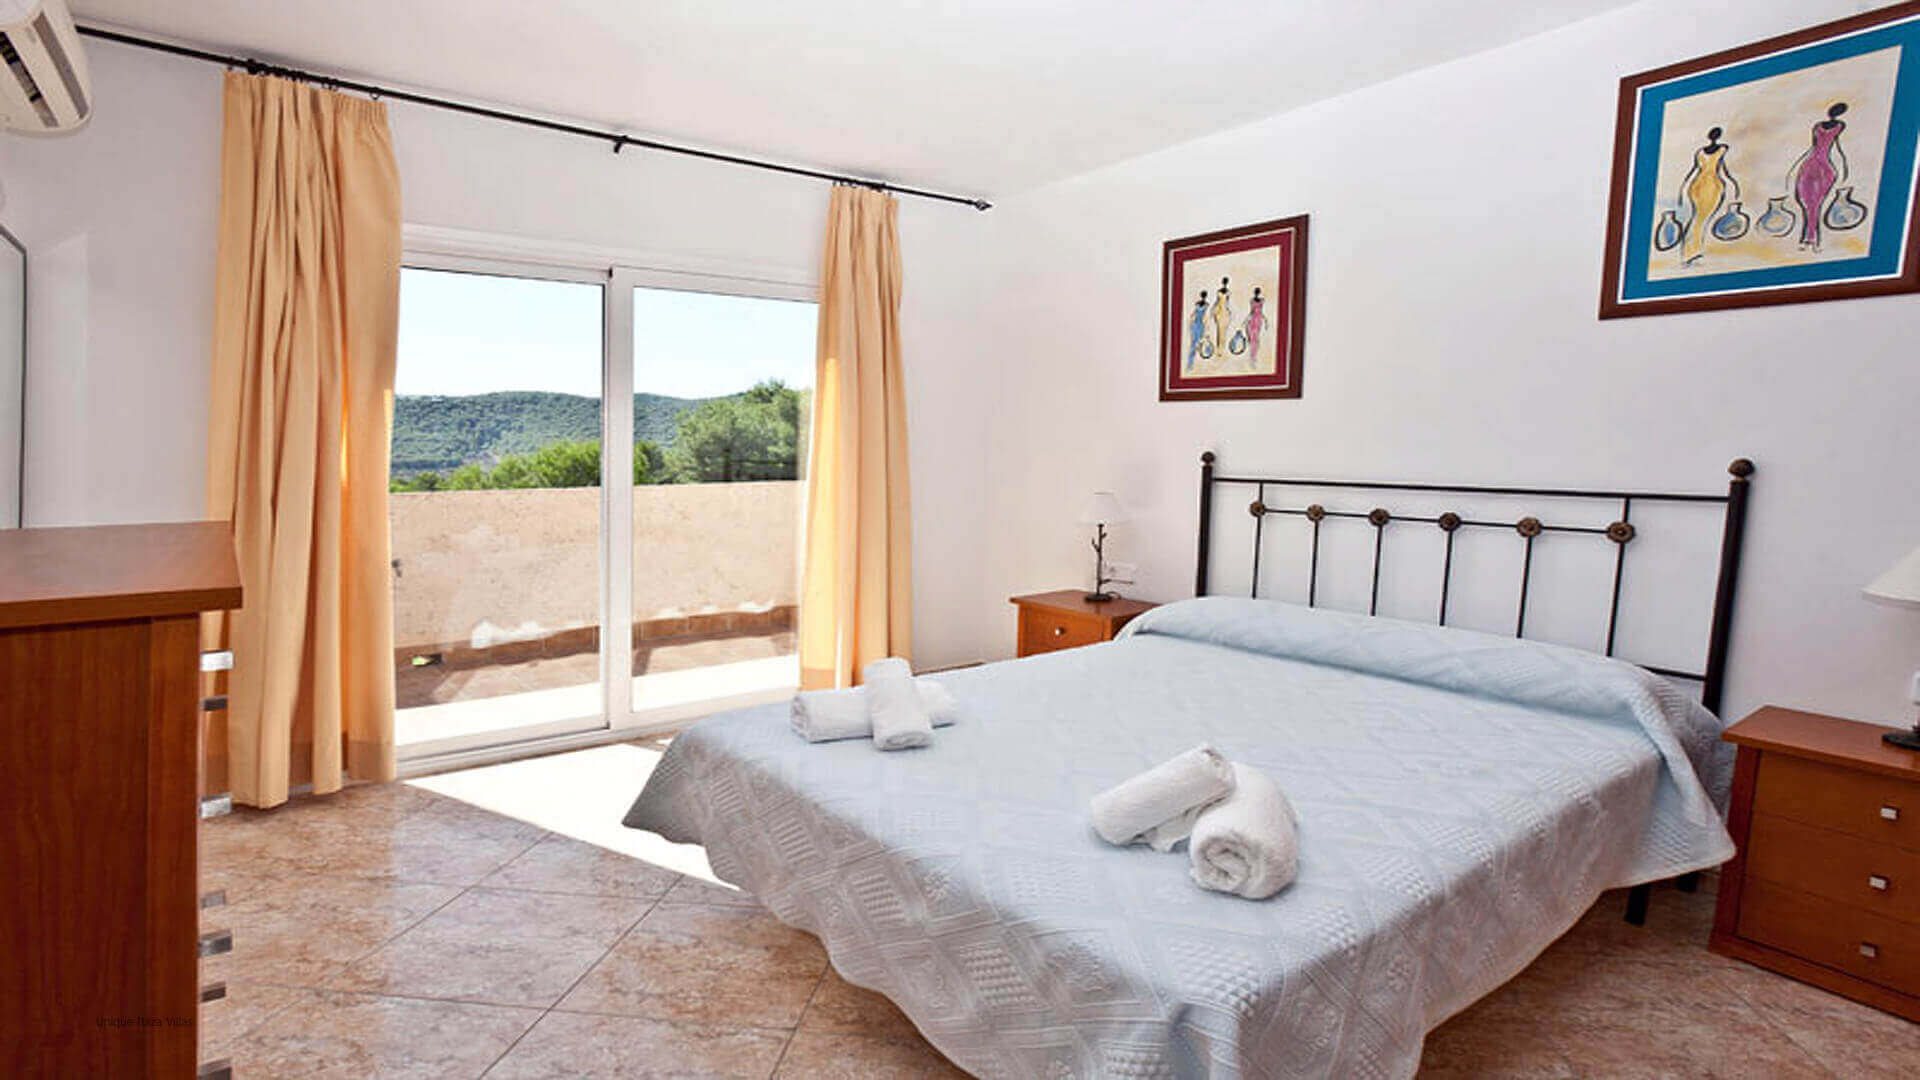 Villa The Pond Ibiza 31 Bedroom 1